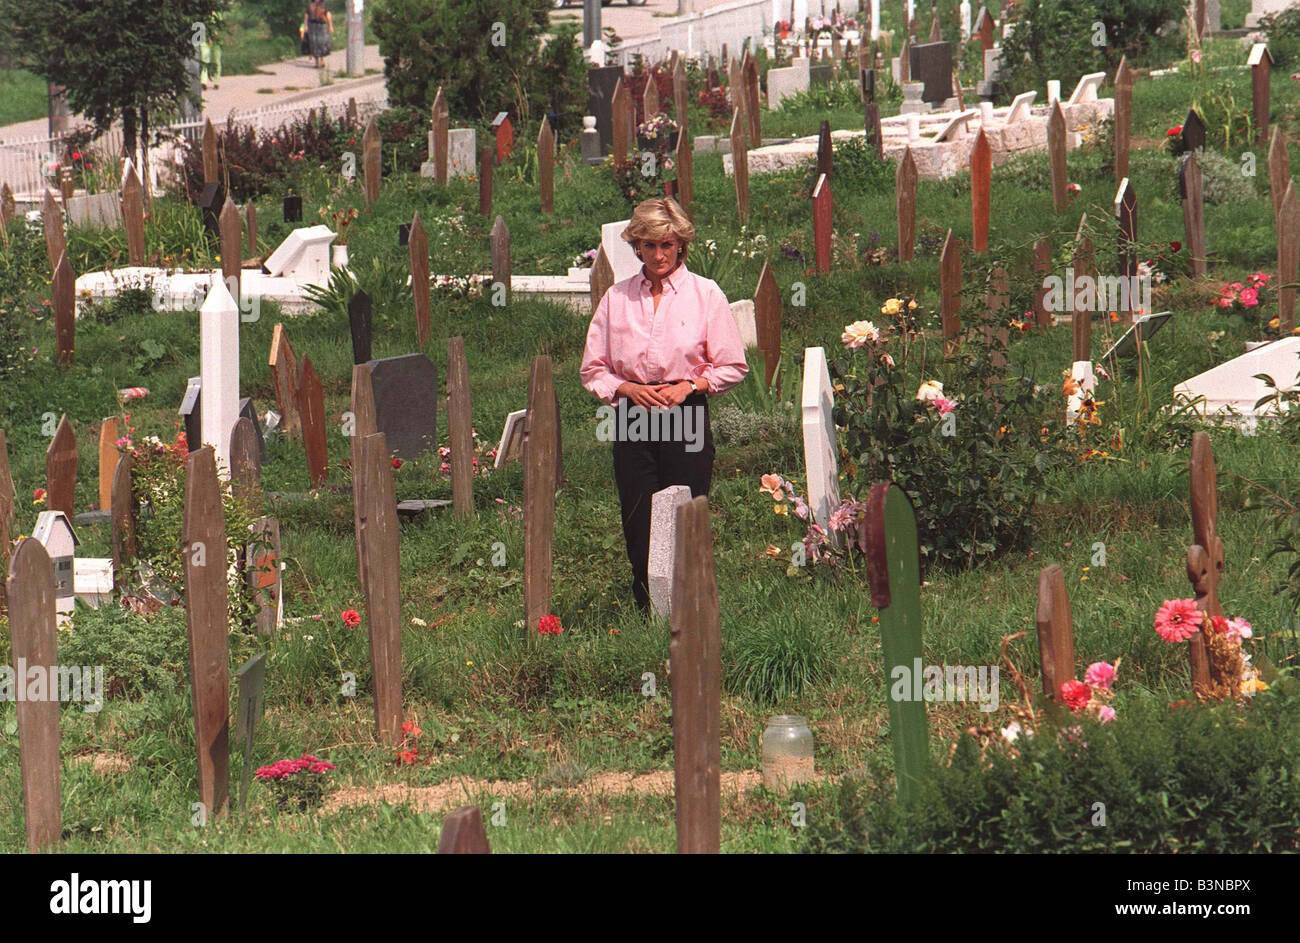 Princess Diana In Bosnia August 1997 Standing Alone In A Graveyard